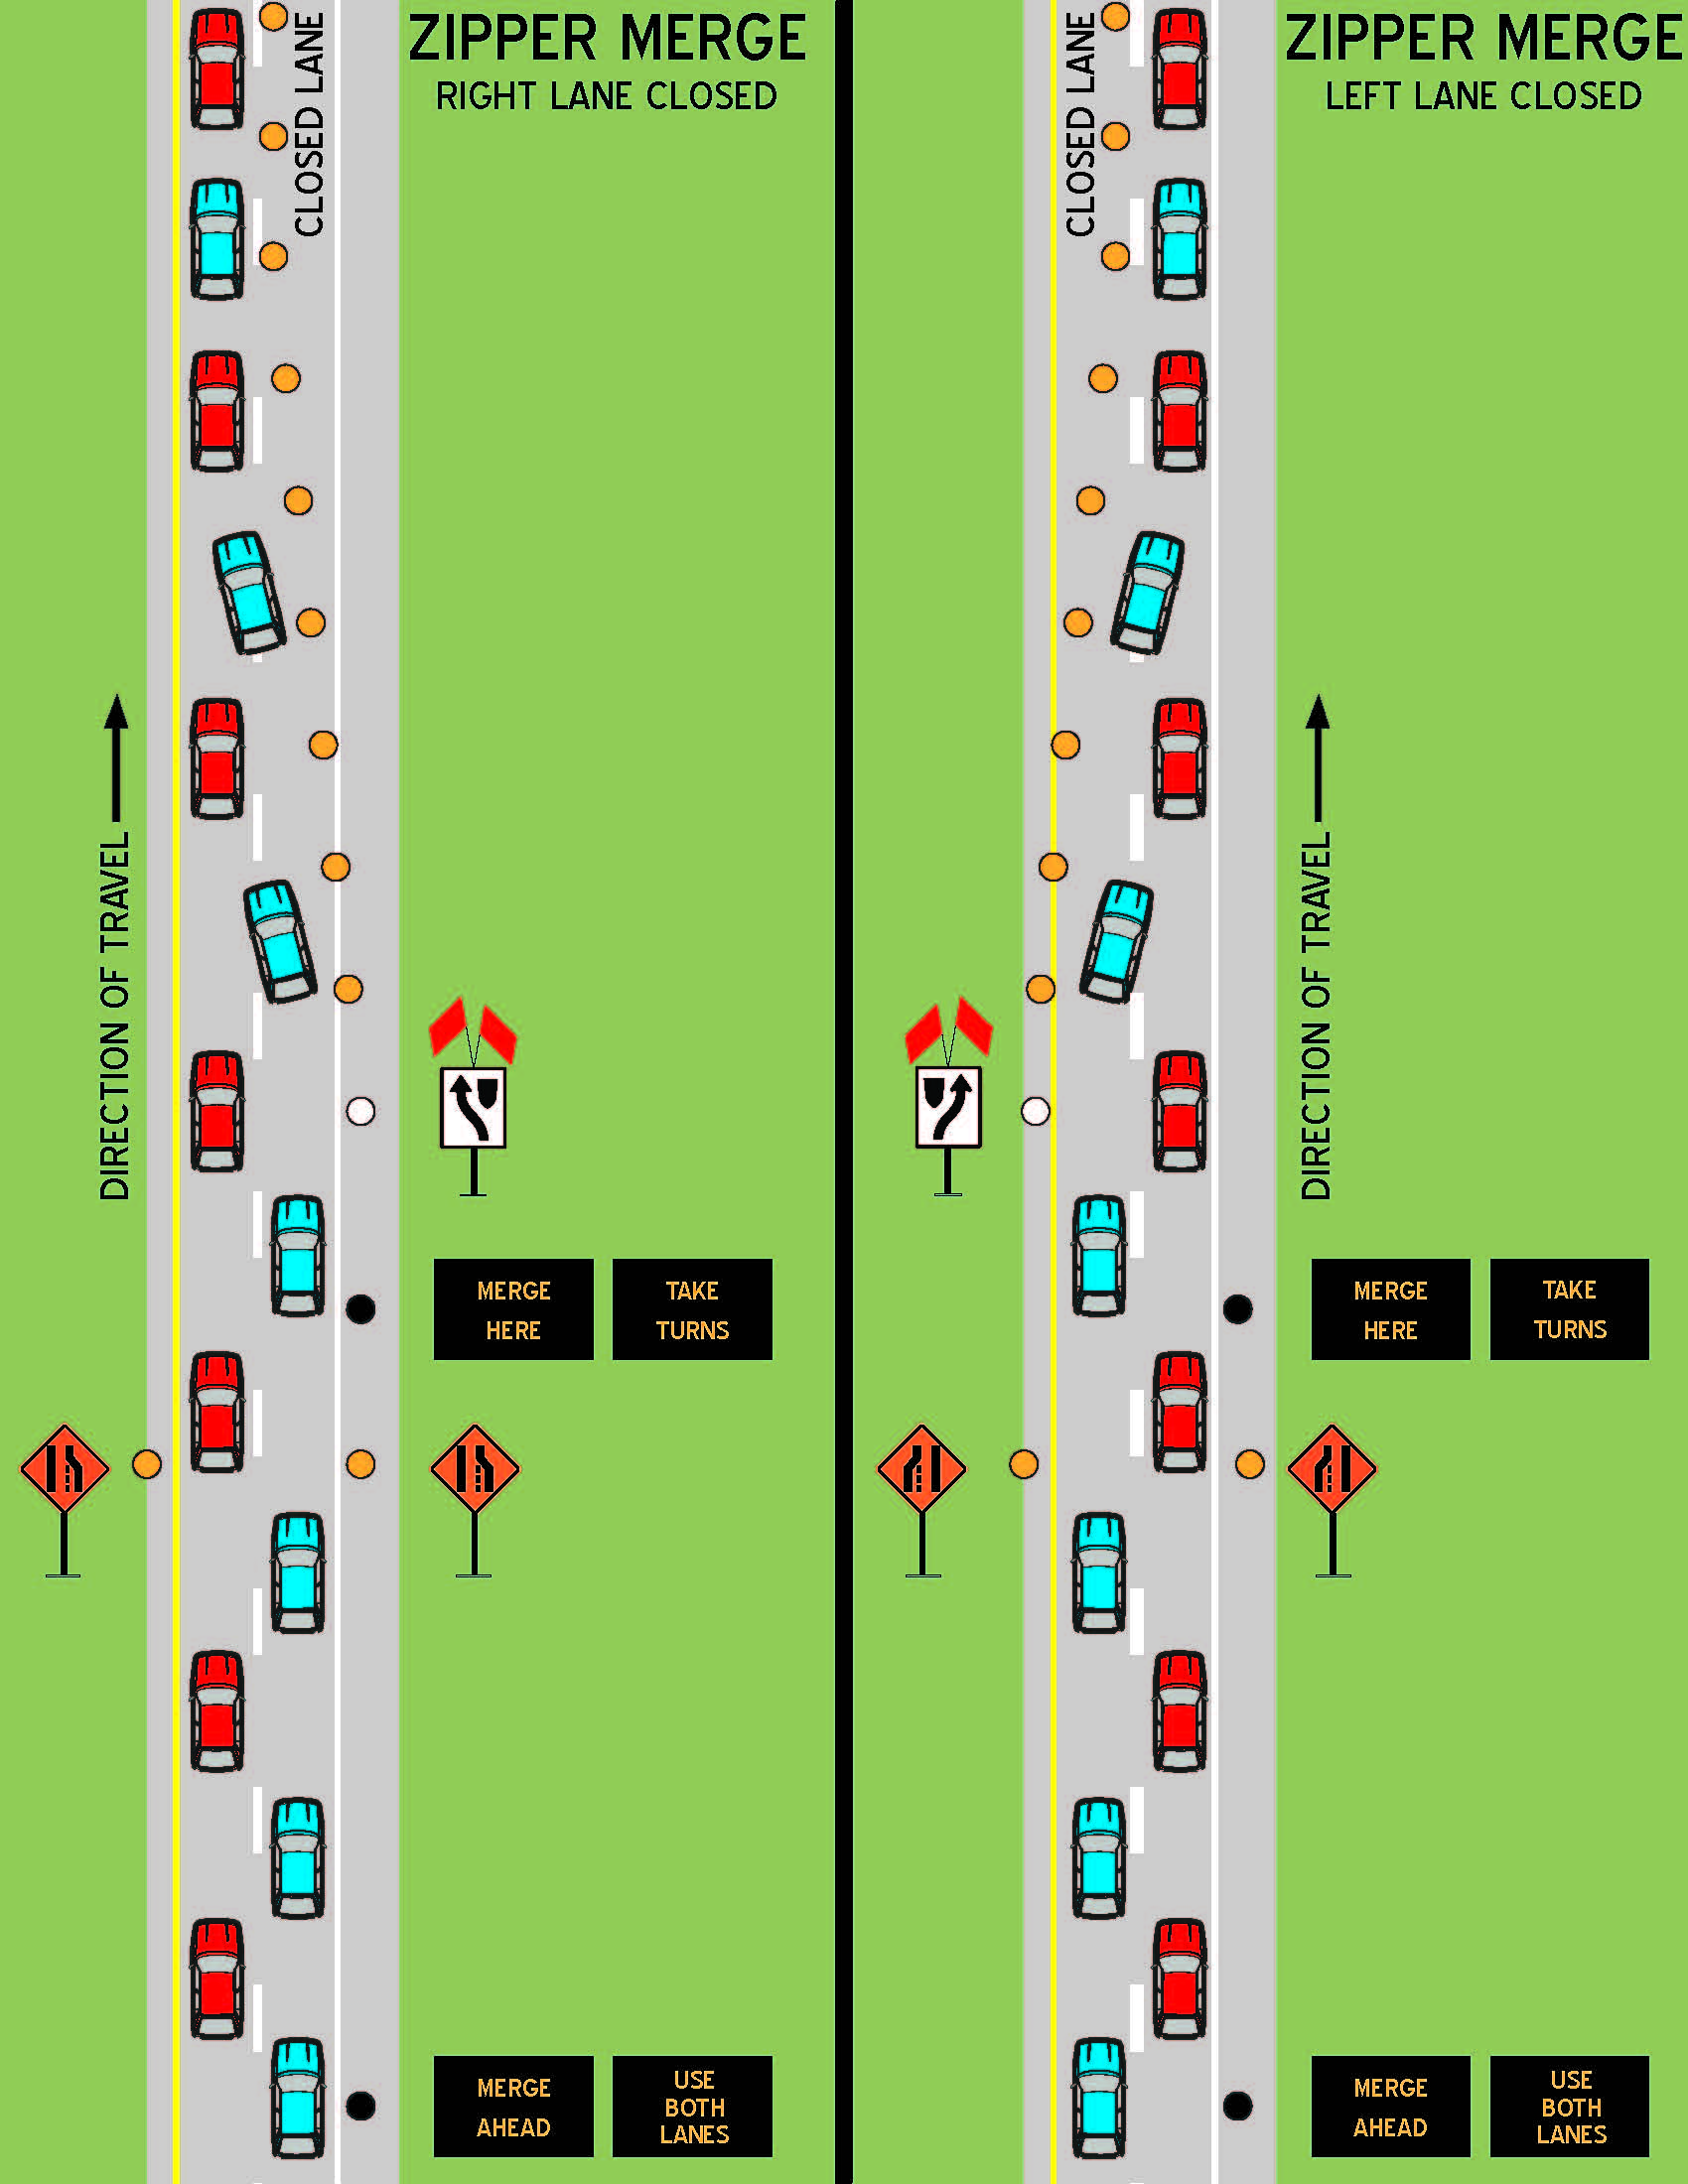 Zipper merge graphic